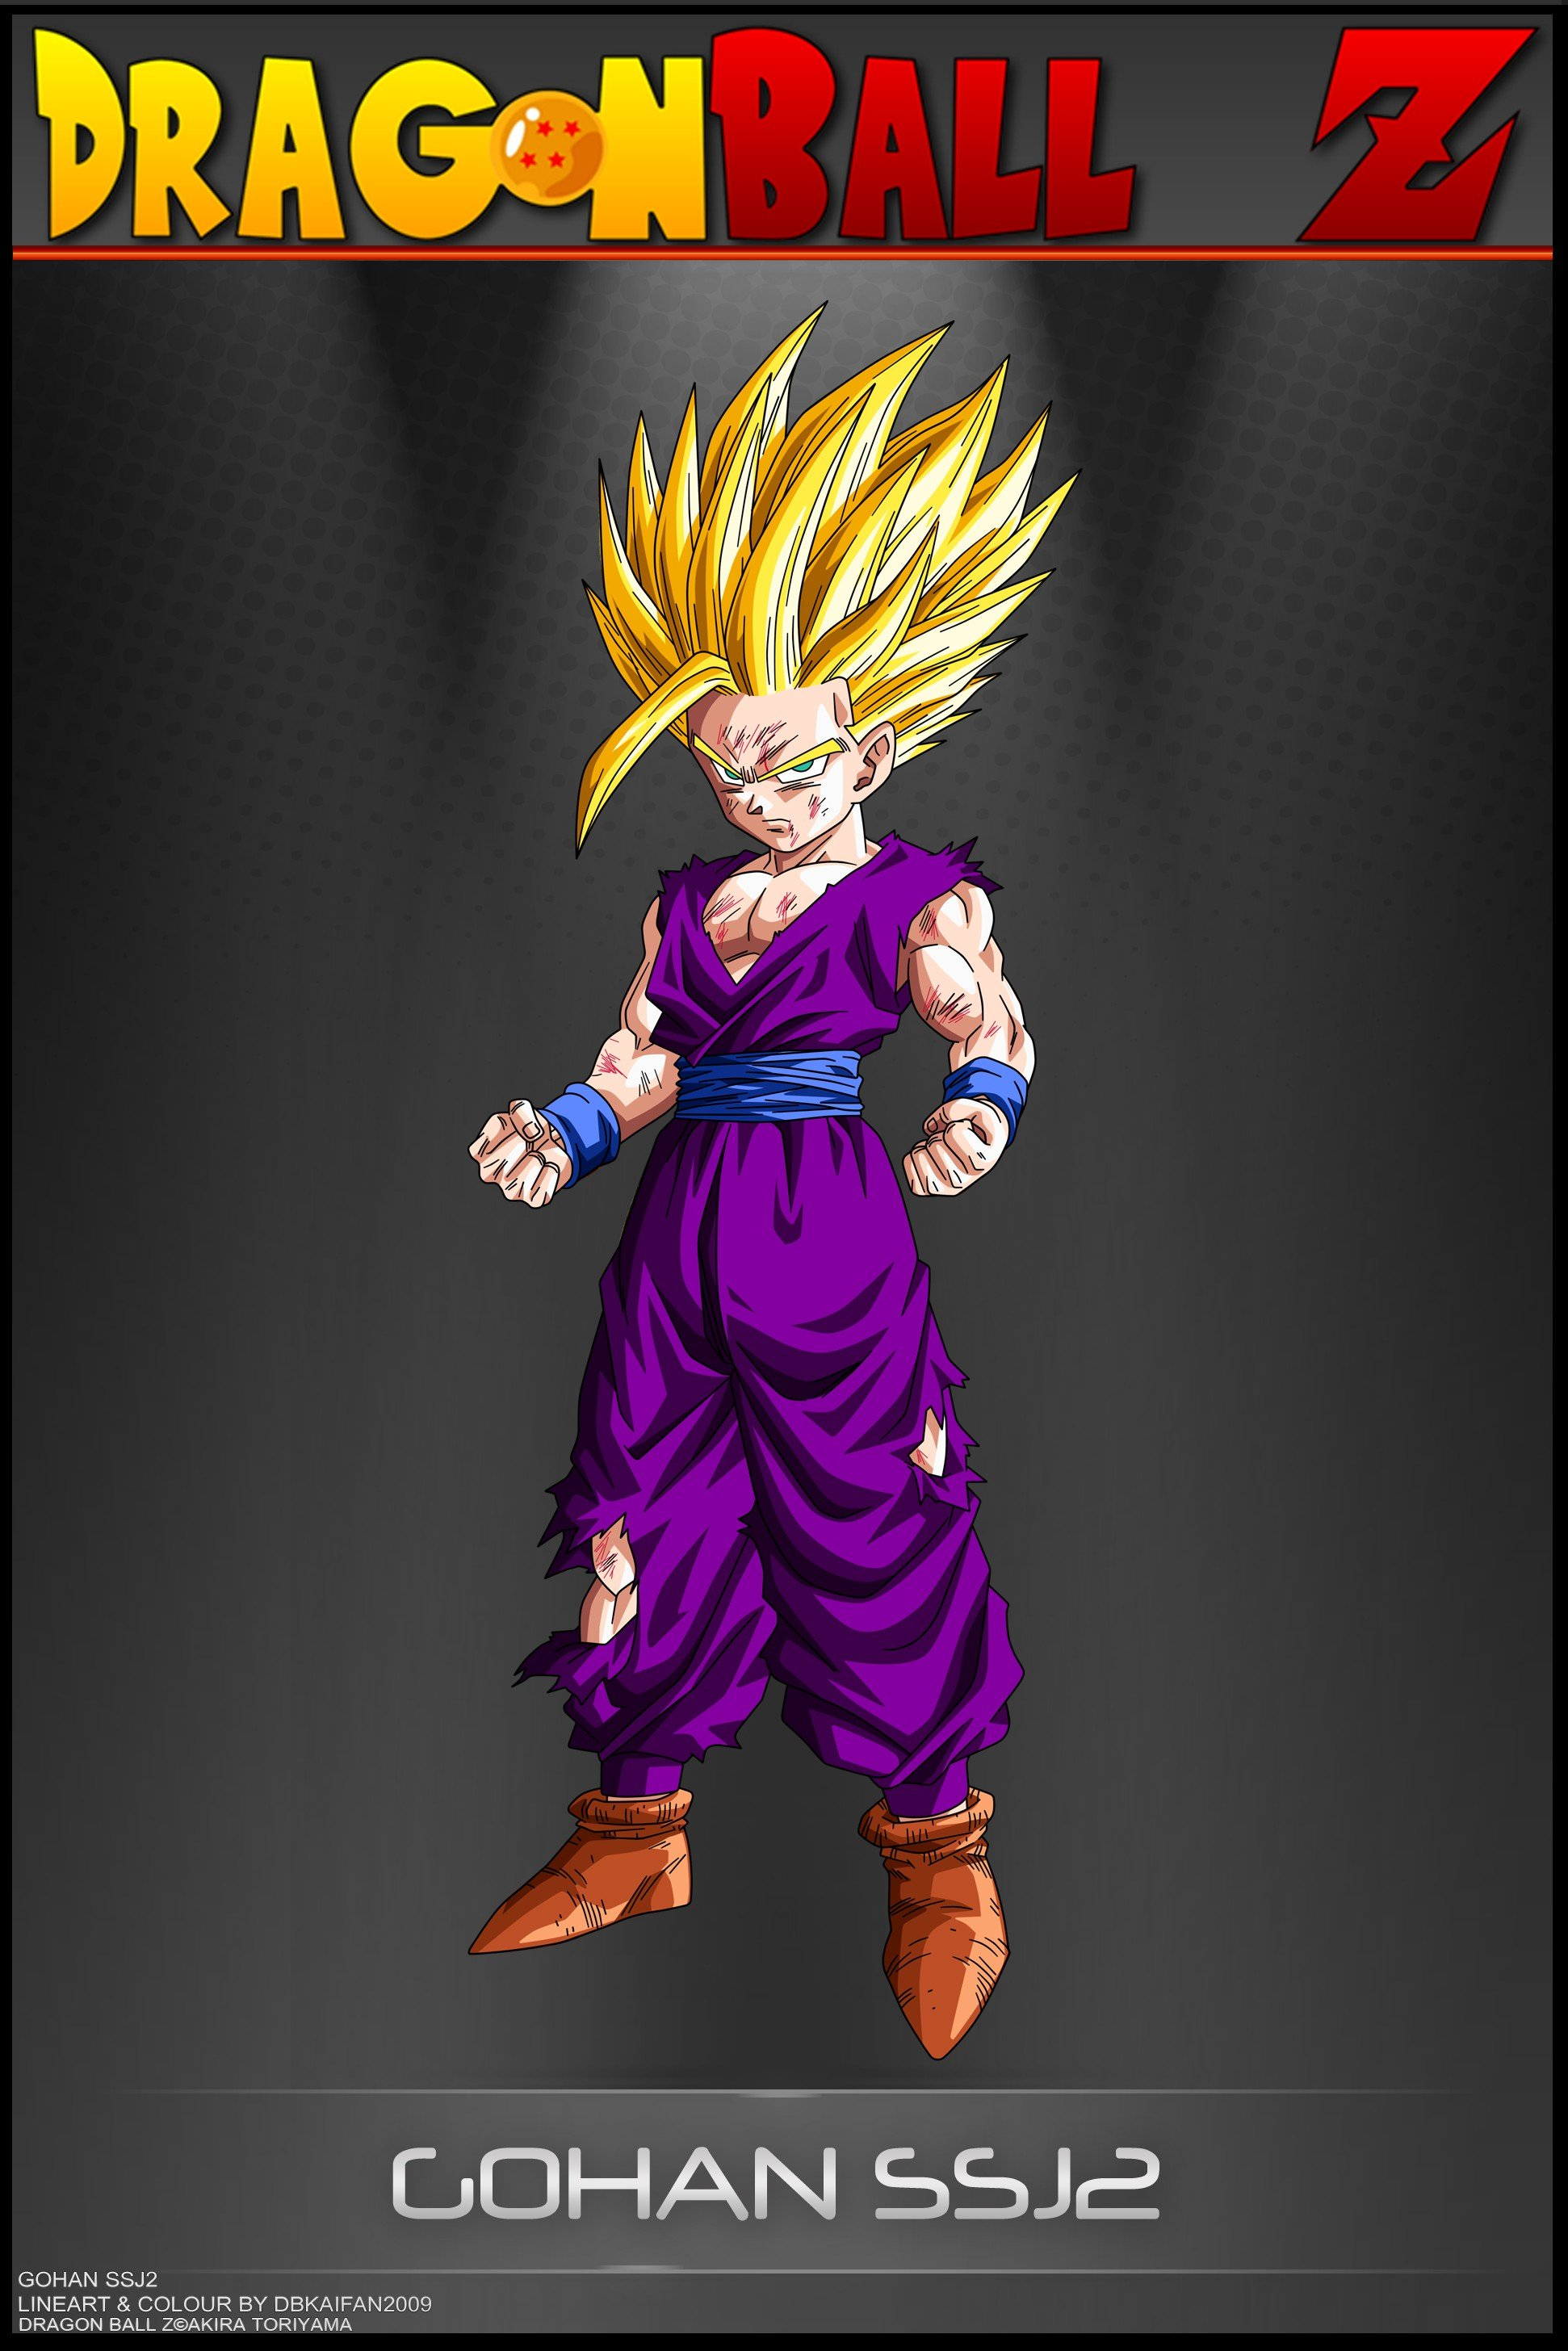 Gohan dragon ball z dragon ball wallpaper 1942x2912 - Dragon ball super background music mp3 download ...